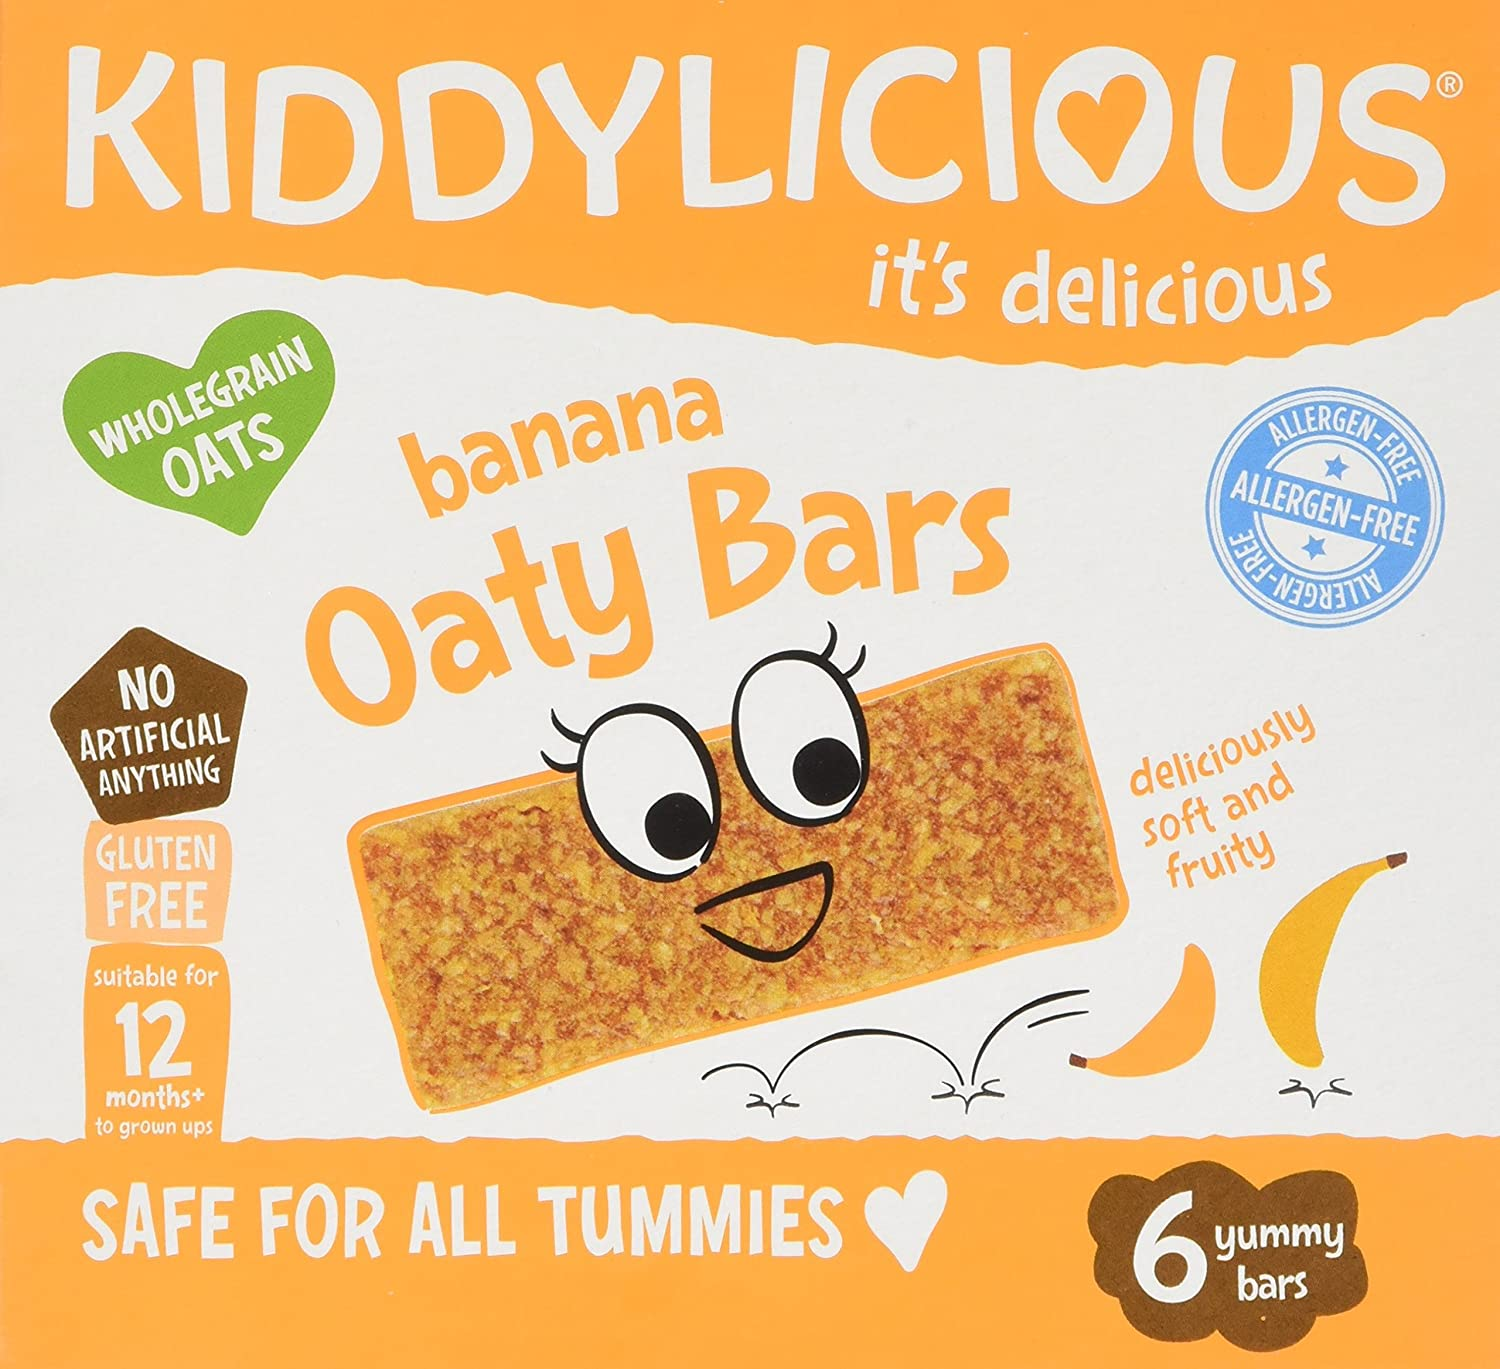 Kiddylicious Banana Oaty Bars, 20 g x 6 (Pack of 6) The Kids Food Co. 1080120